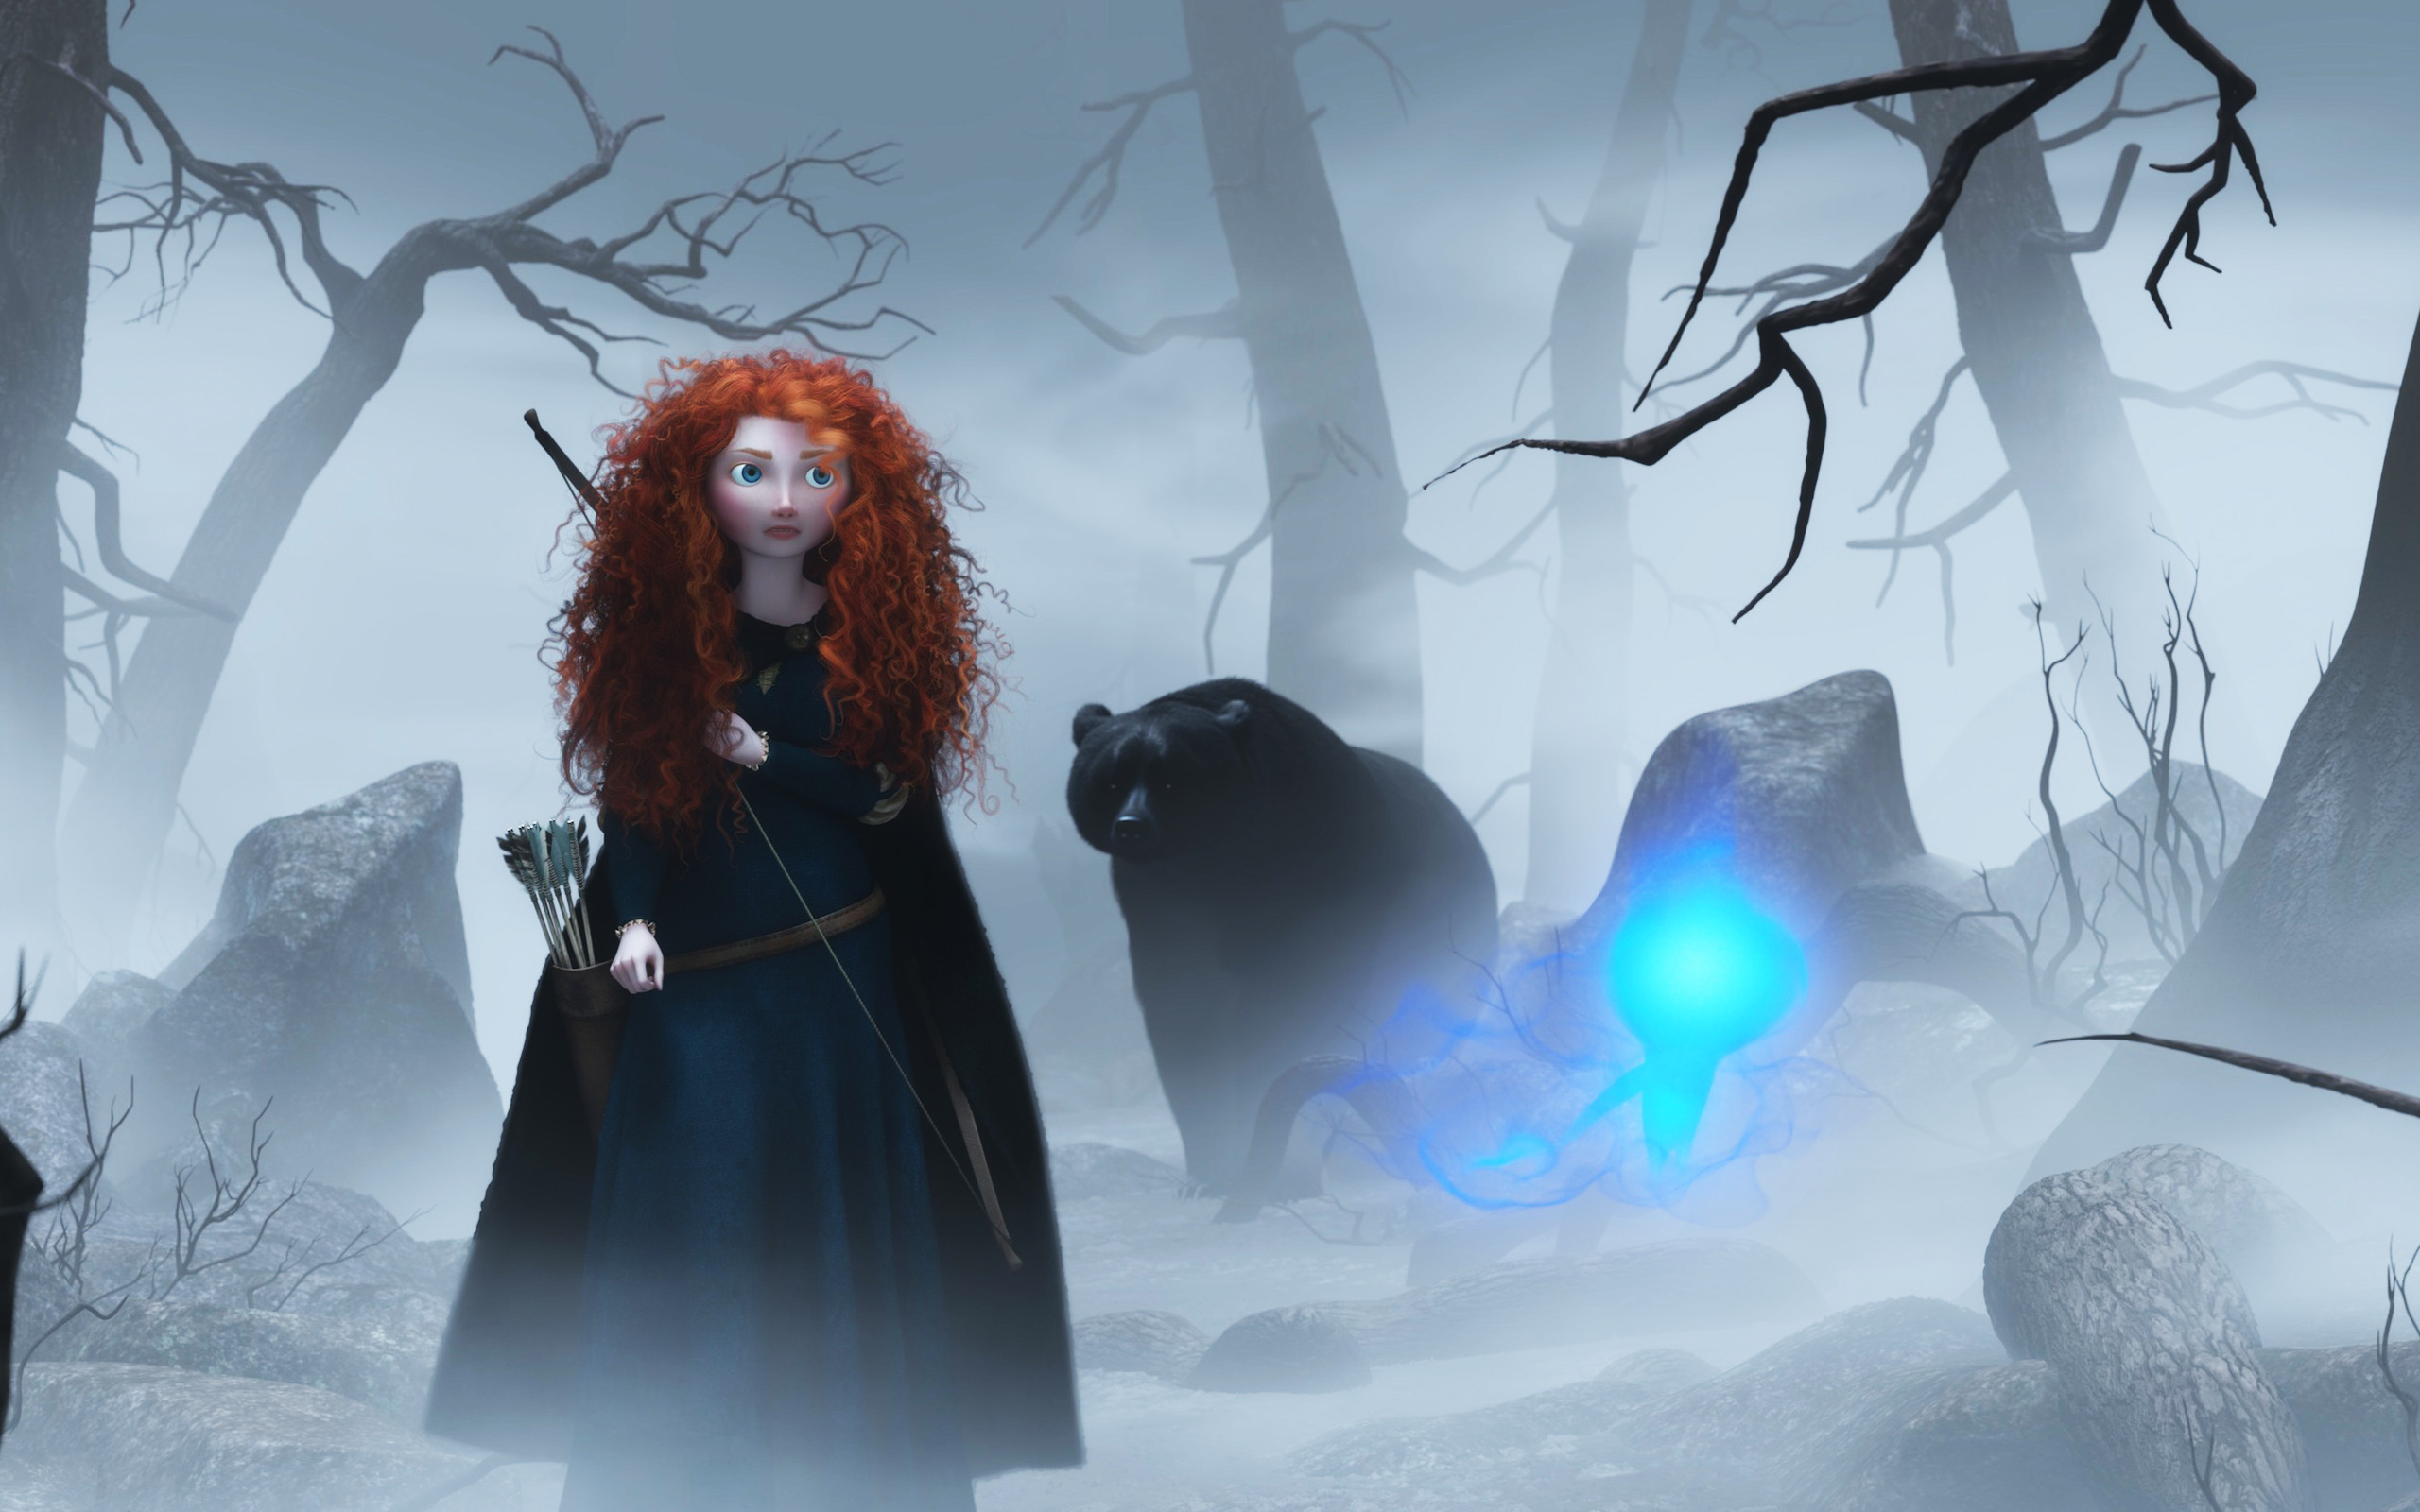 46 Brave Merida Wallpaper On Wallpapersafari